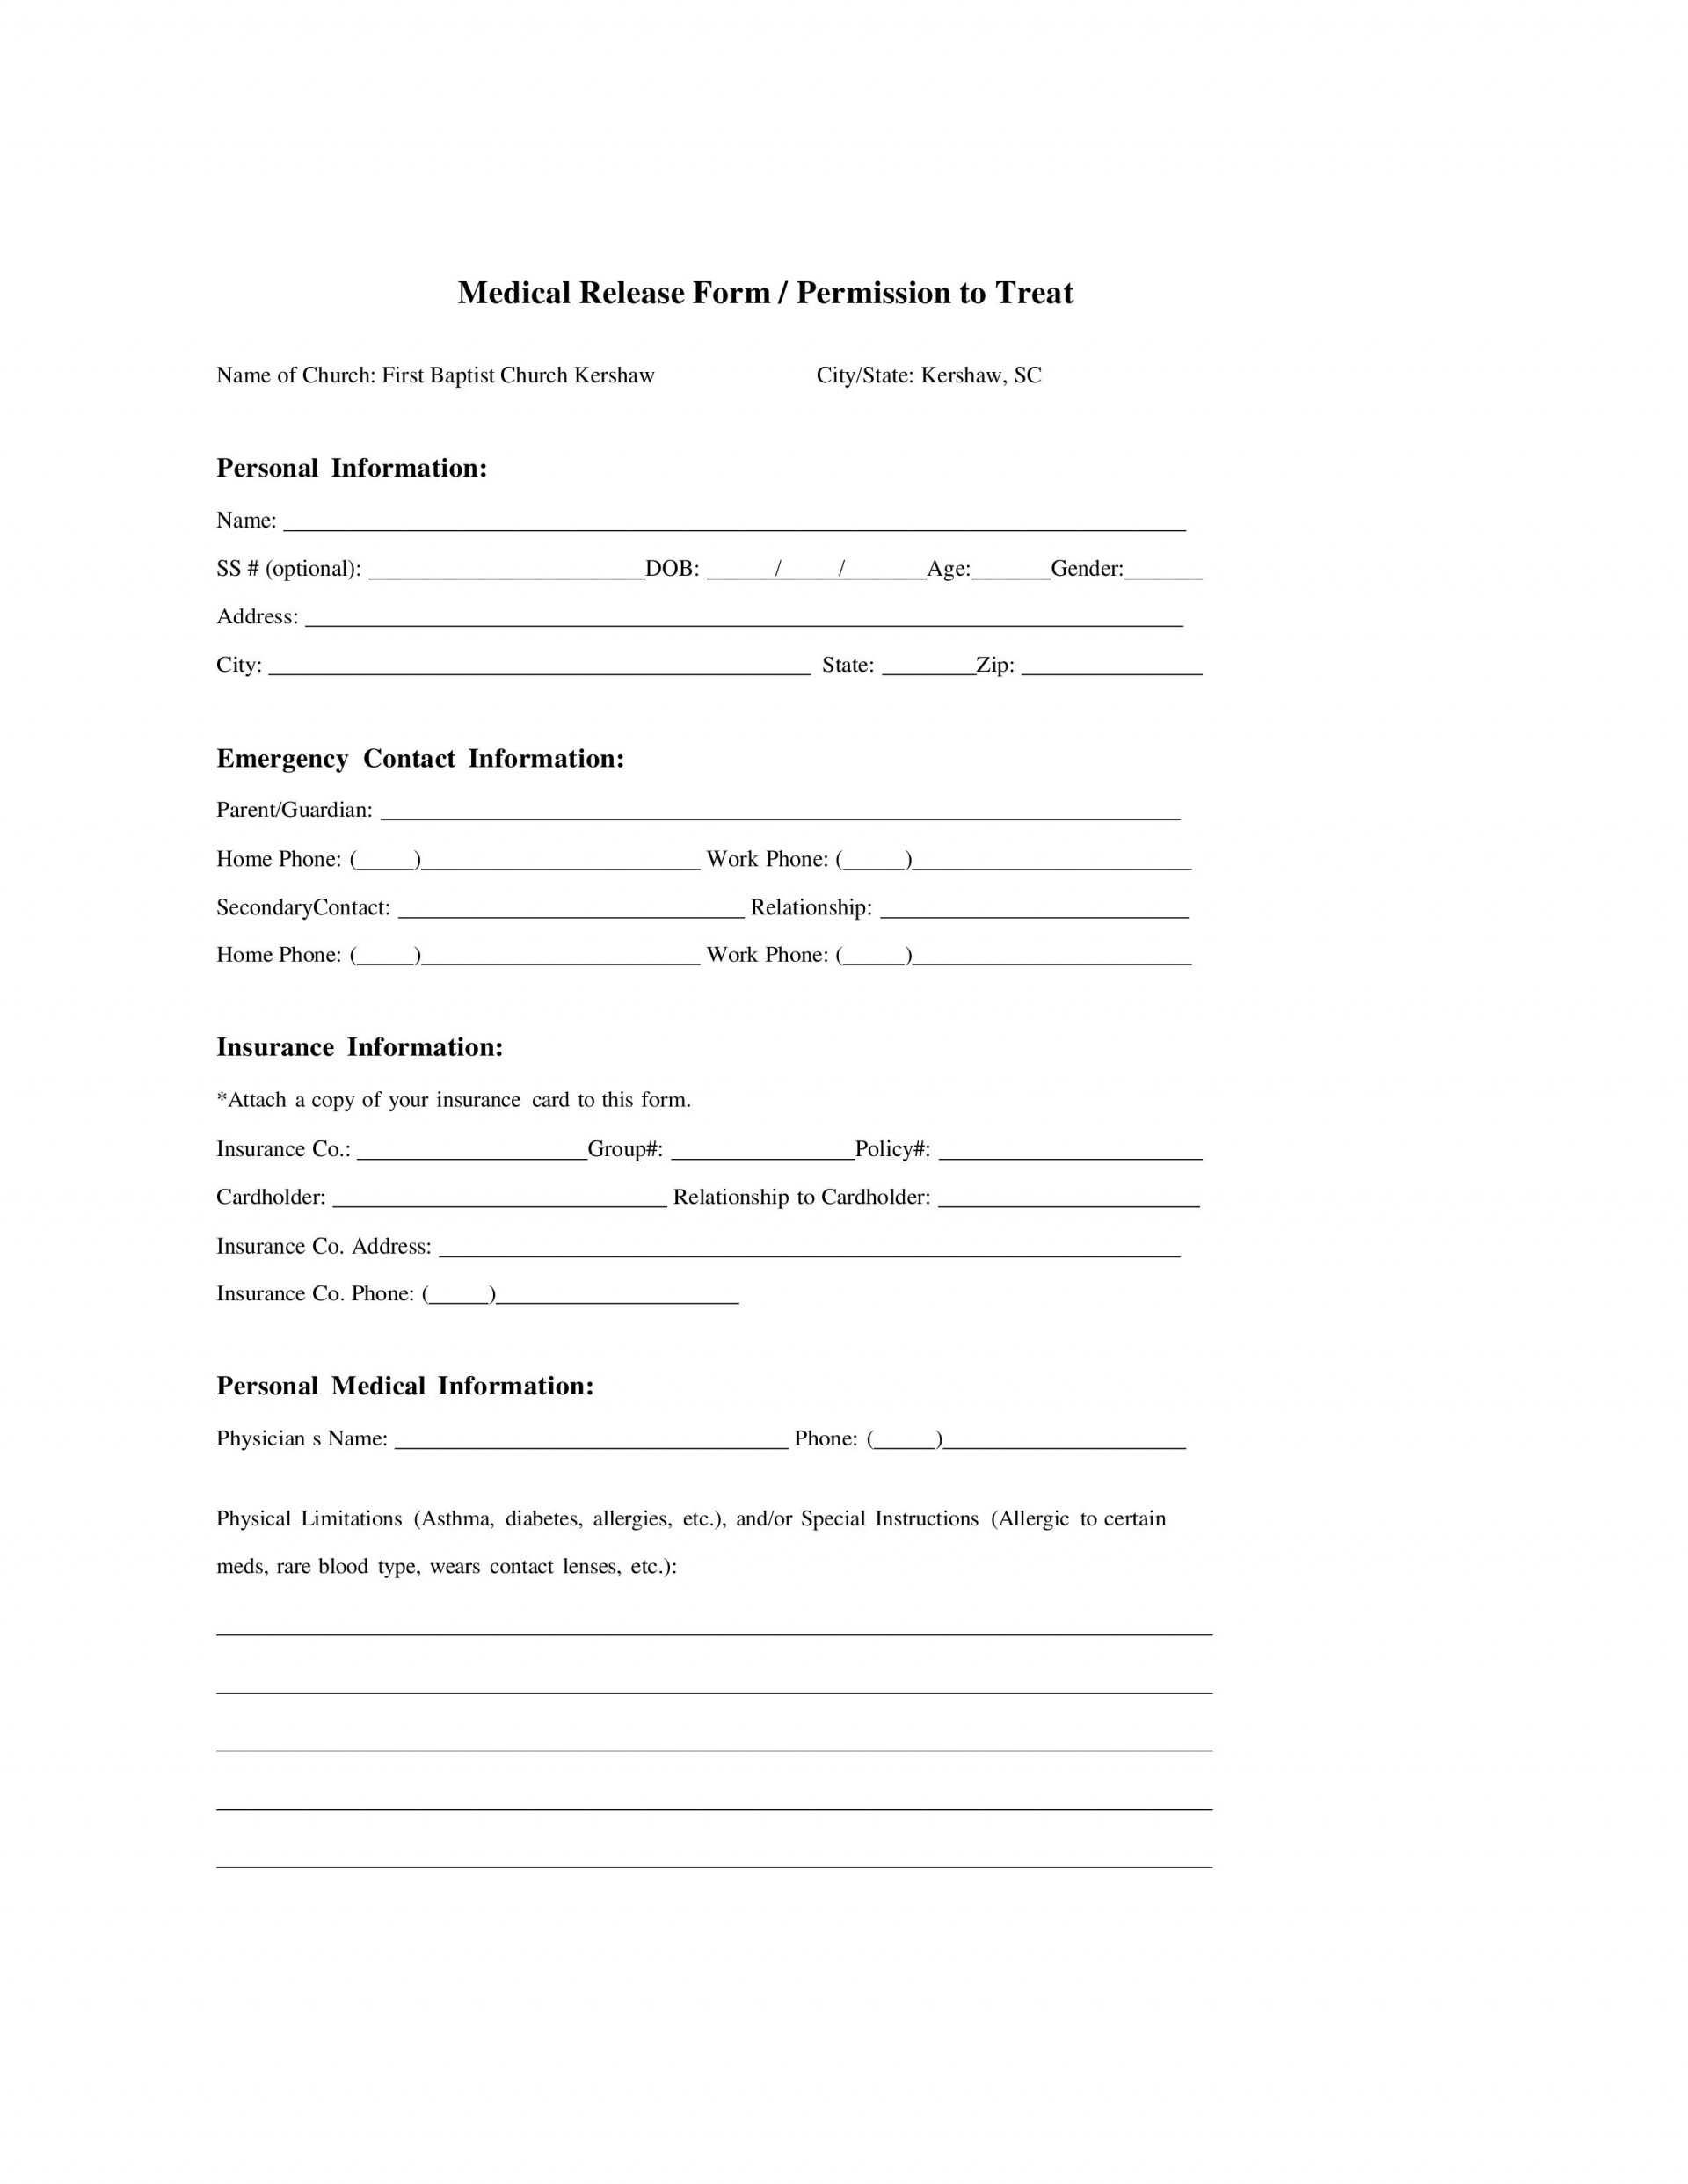 006 Simple Medical Release Form Template Example  Free Consent Uk For Minor1920